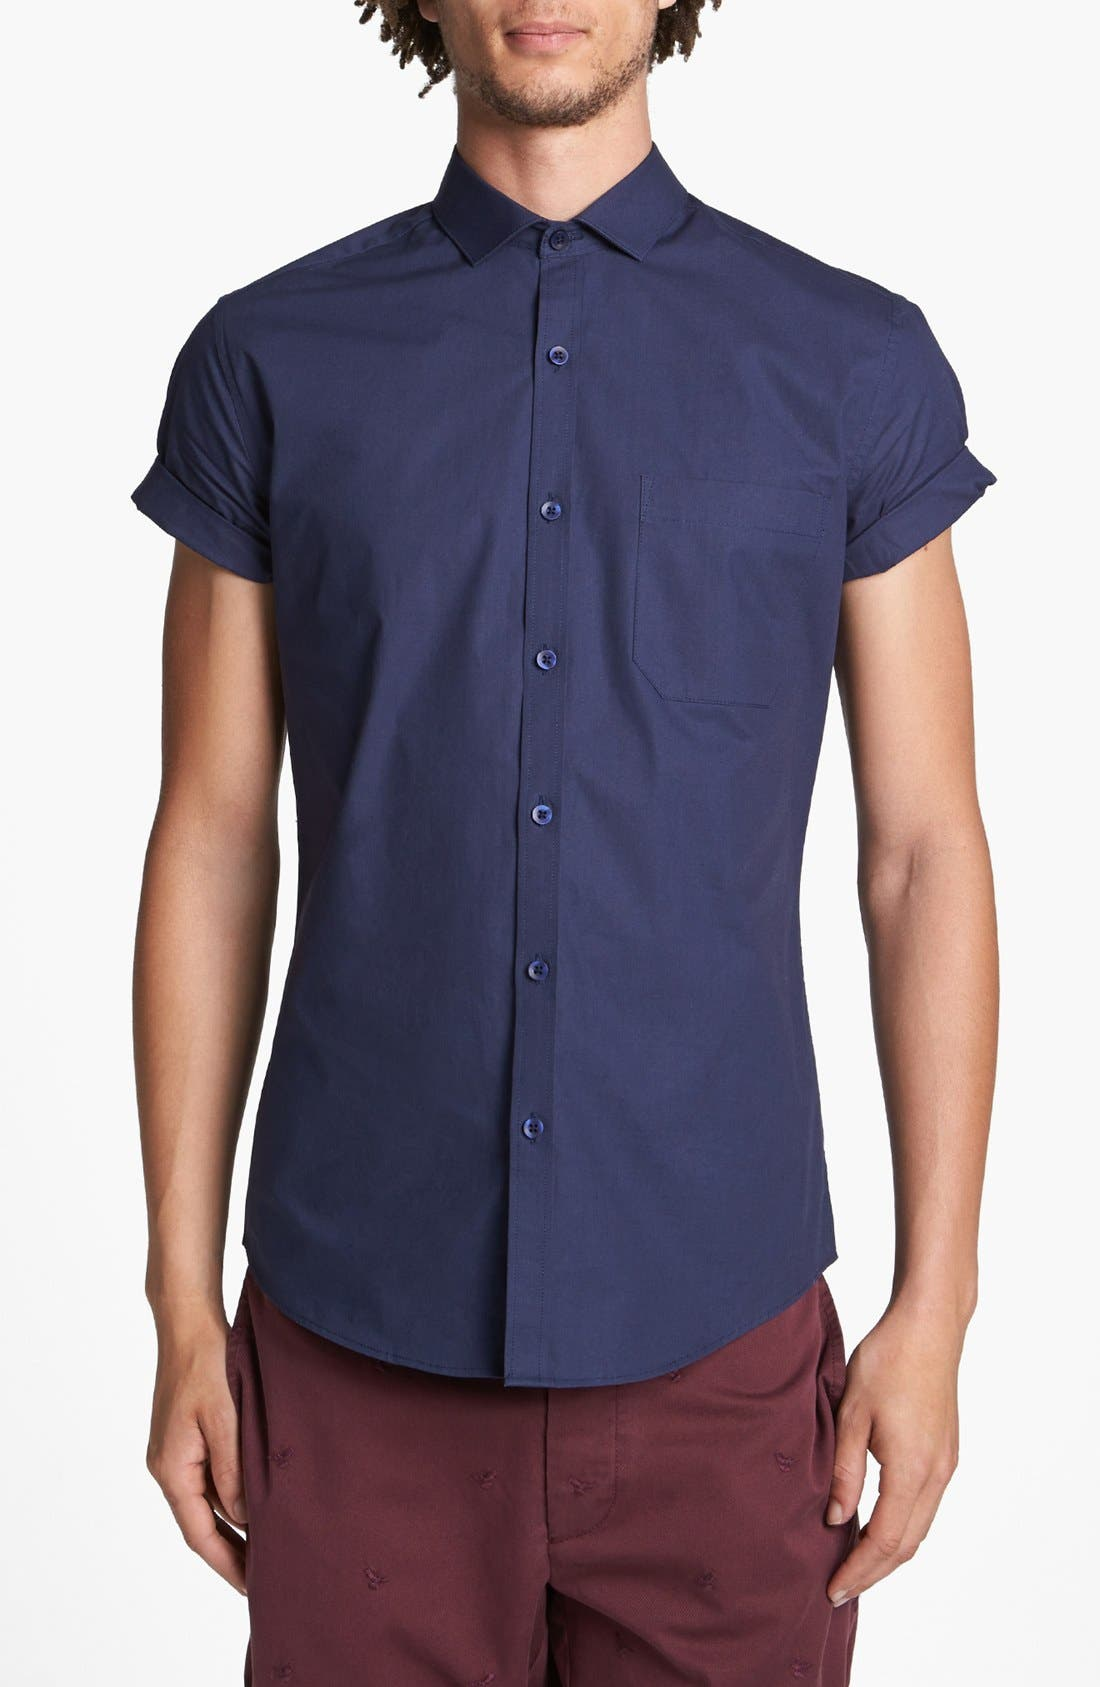 Alternate Image 1 Selected - Topman Short Sleeve Cotton Shirt